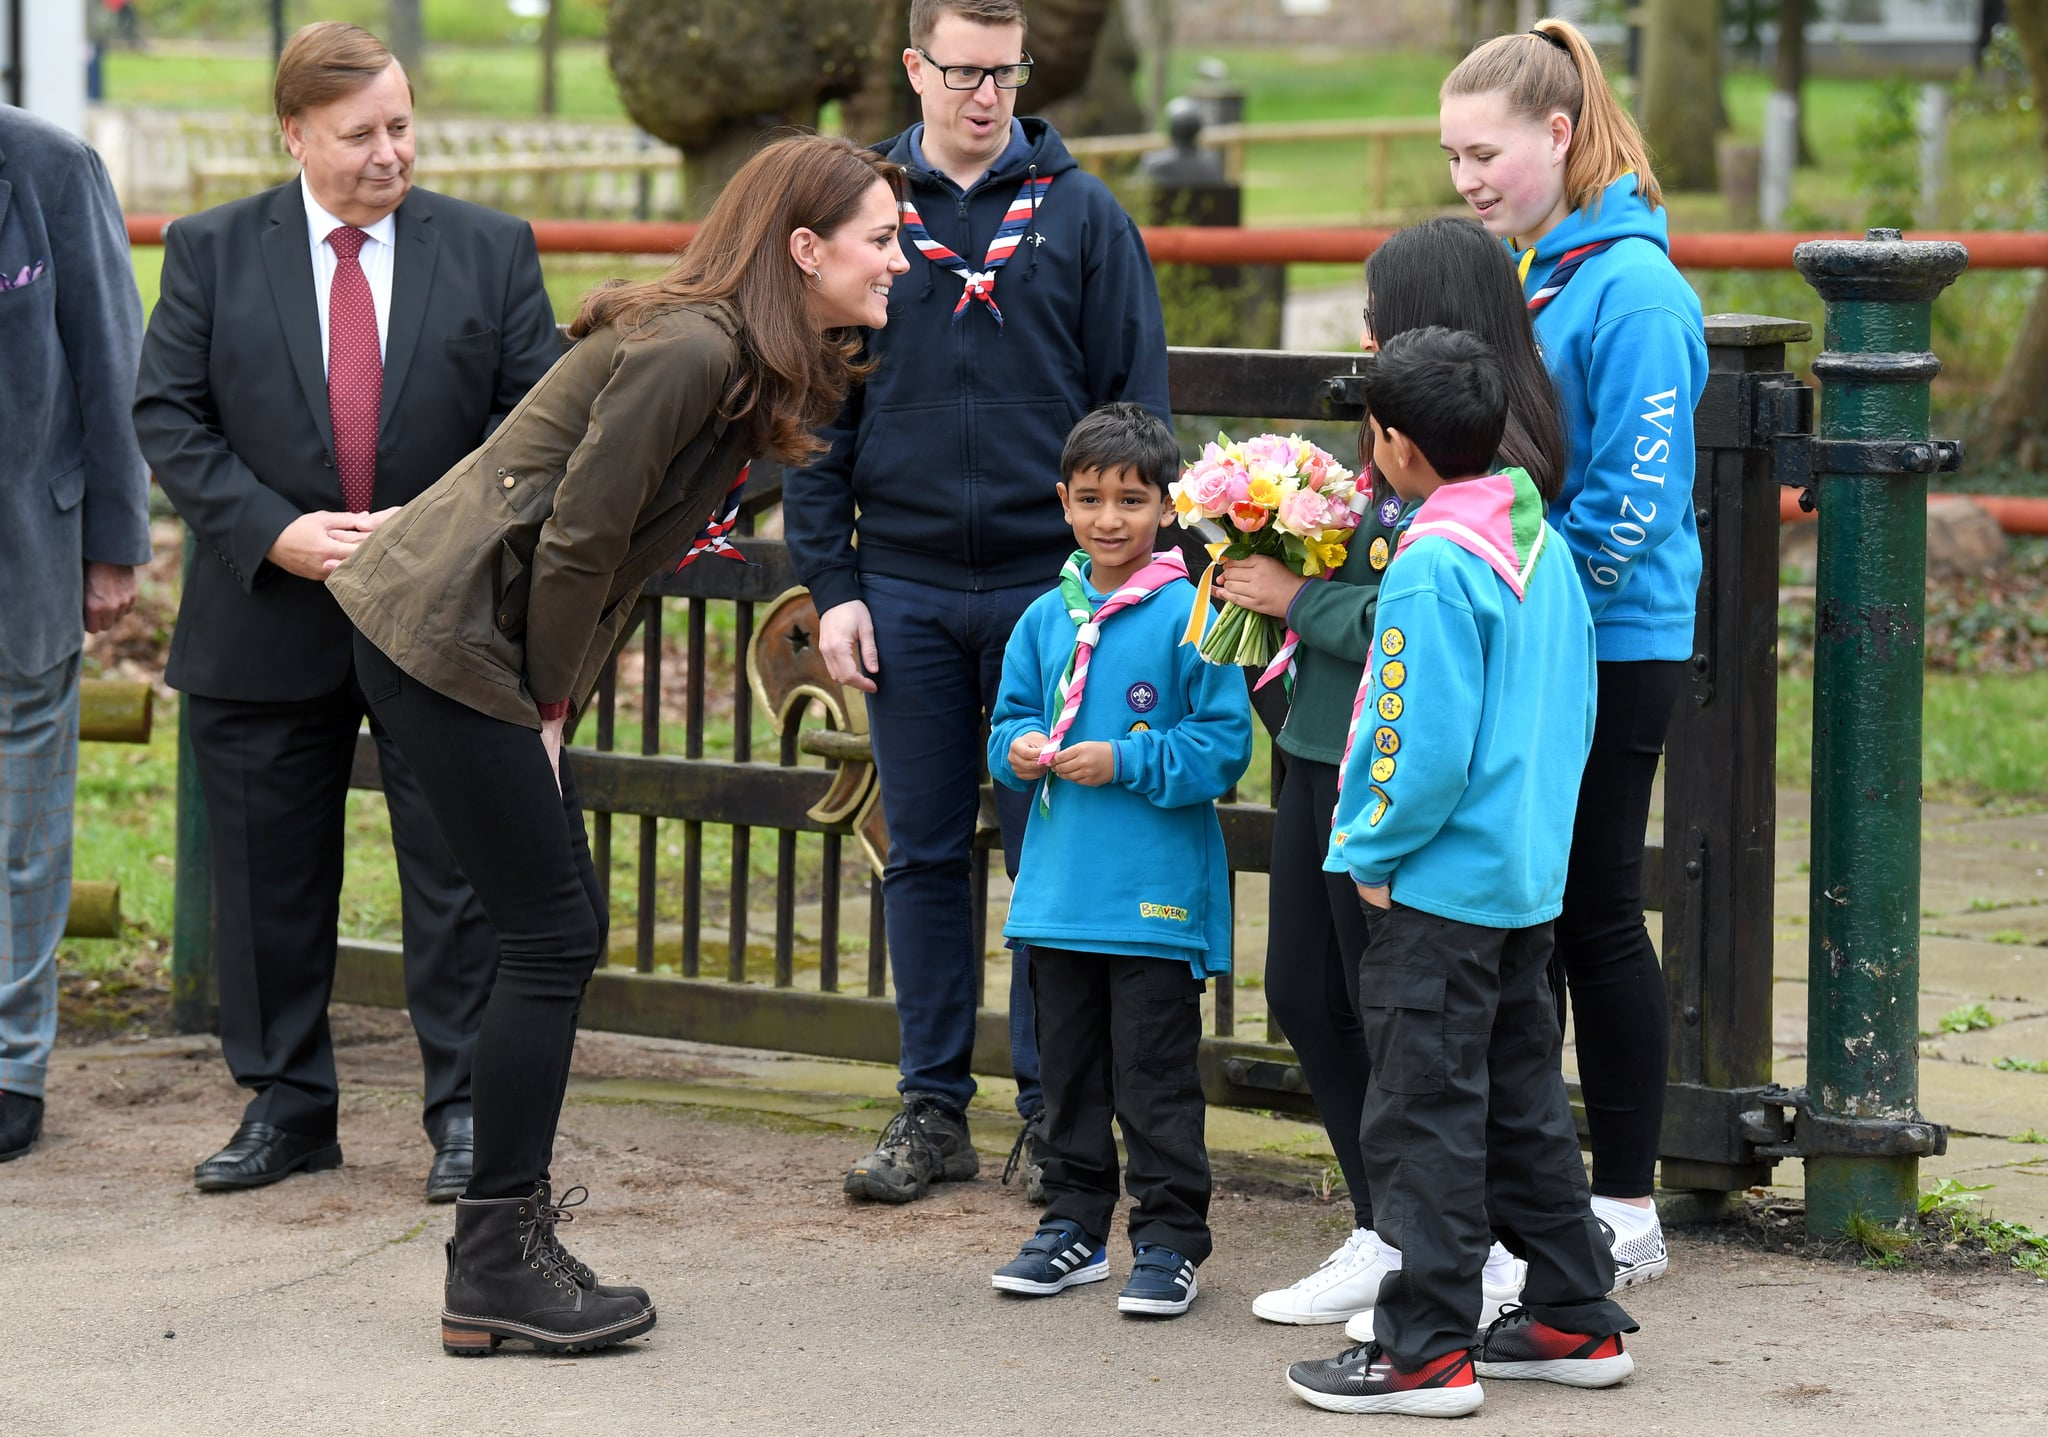 EPPING, ENGLAND - MARCH 28: Catherine, Duchess of Cambridge visits the Scouts' headquarters at Gilwell Park to learn more about the organisation's new pilot to bring Scouting to younger children, the visit will also celebrate the site's 100th anniversary year at Gilwell Park on March 28, 2019 in Epping, England. (Photo by Karwai Tang/WireImage)